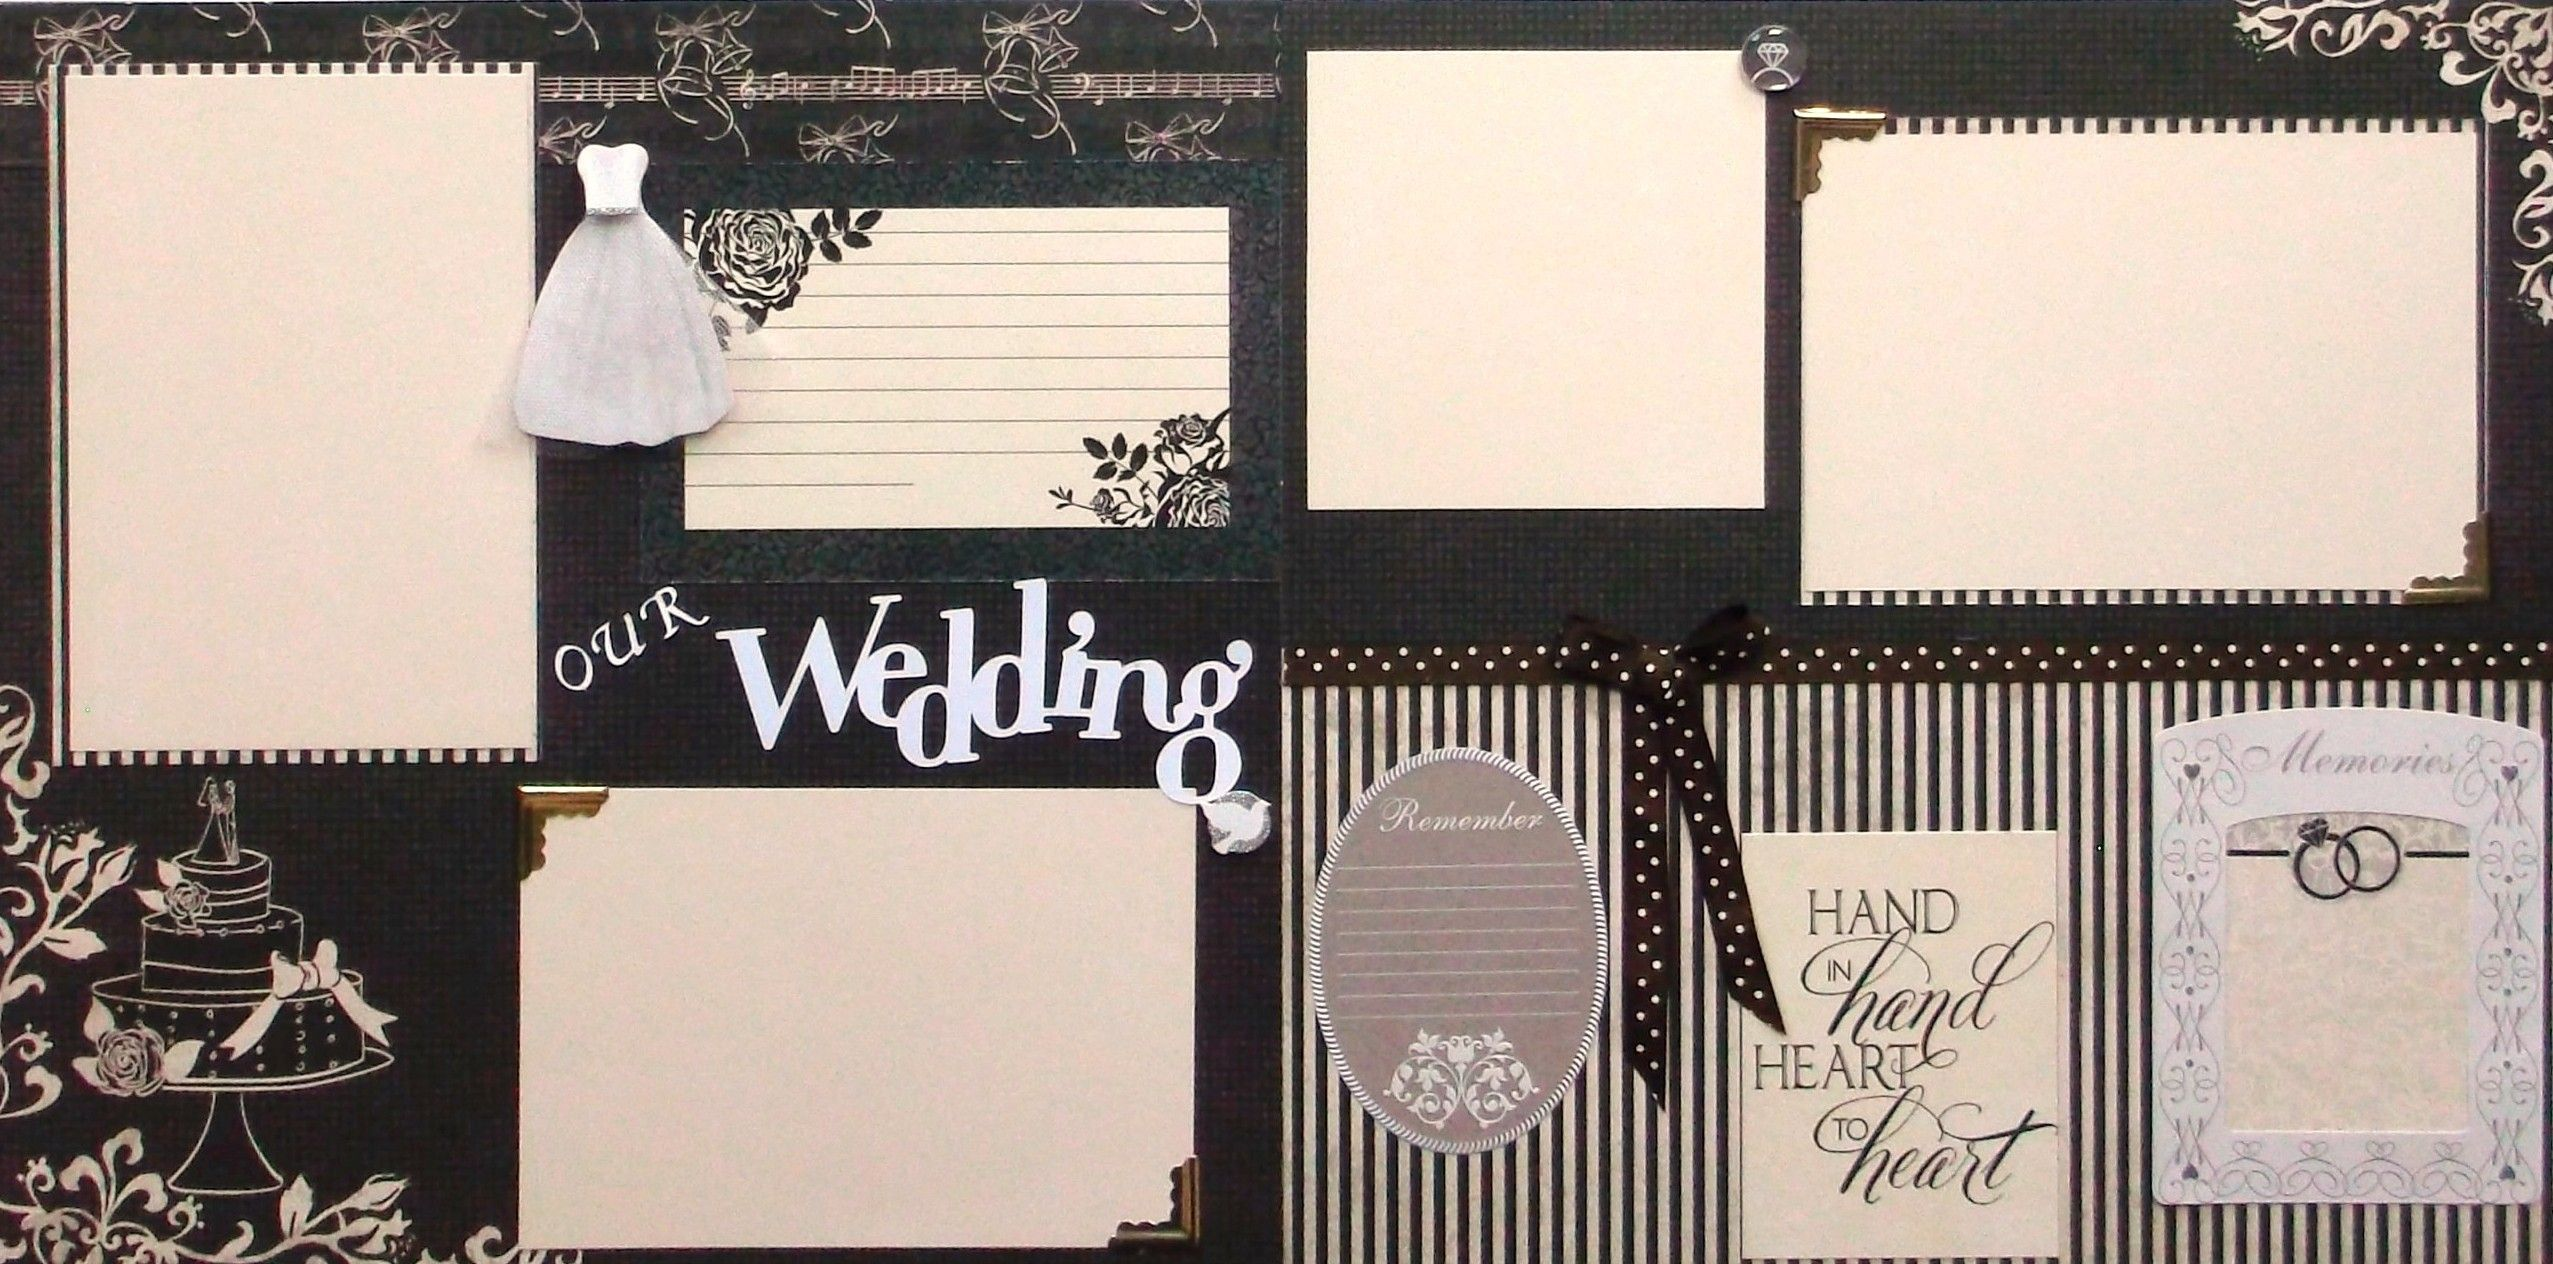 12x12 wedding scrapbook paper - Two 12x12 Wedding Scrapbook Pages In Protective Sleeves Are Ready For Your Photos Handmade In